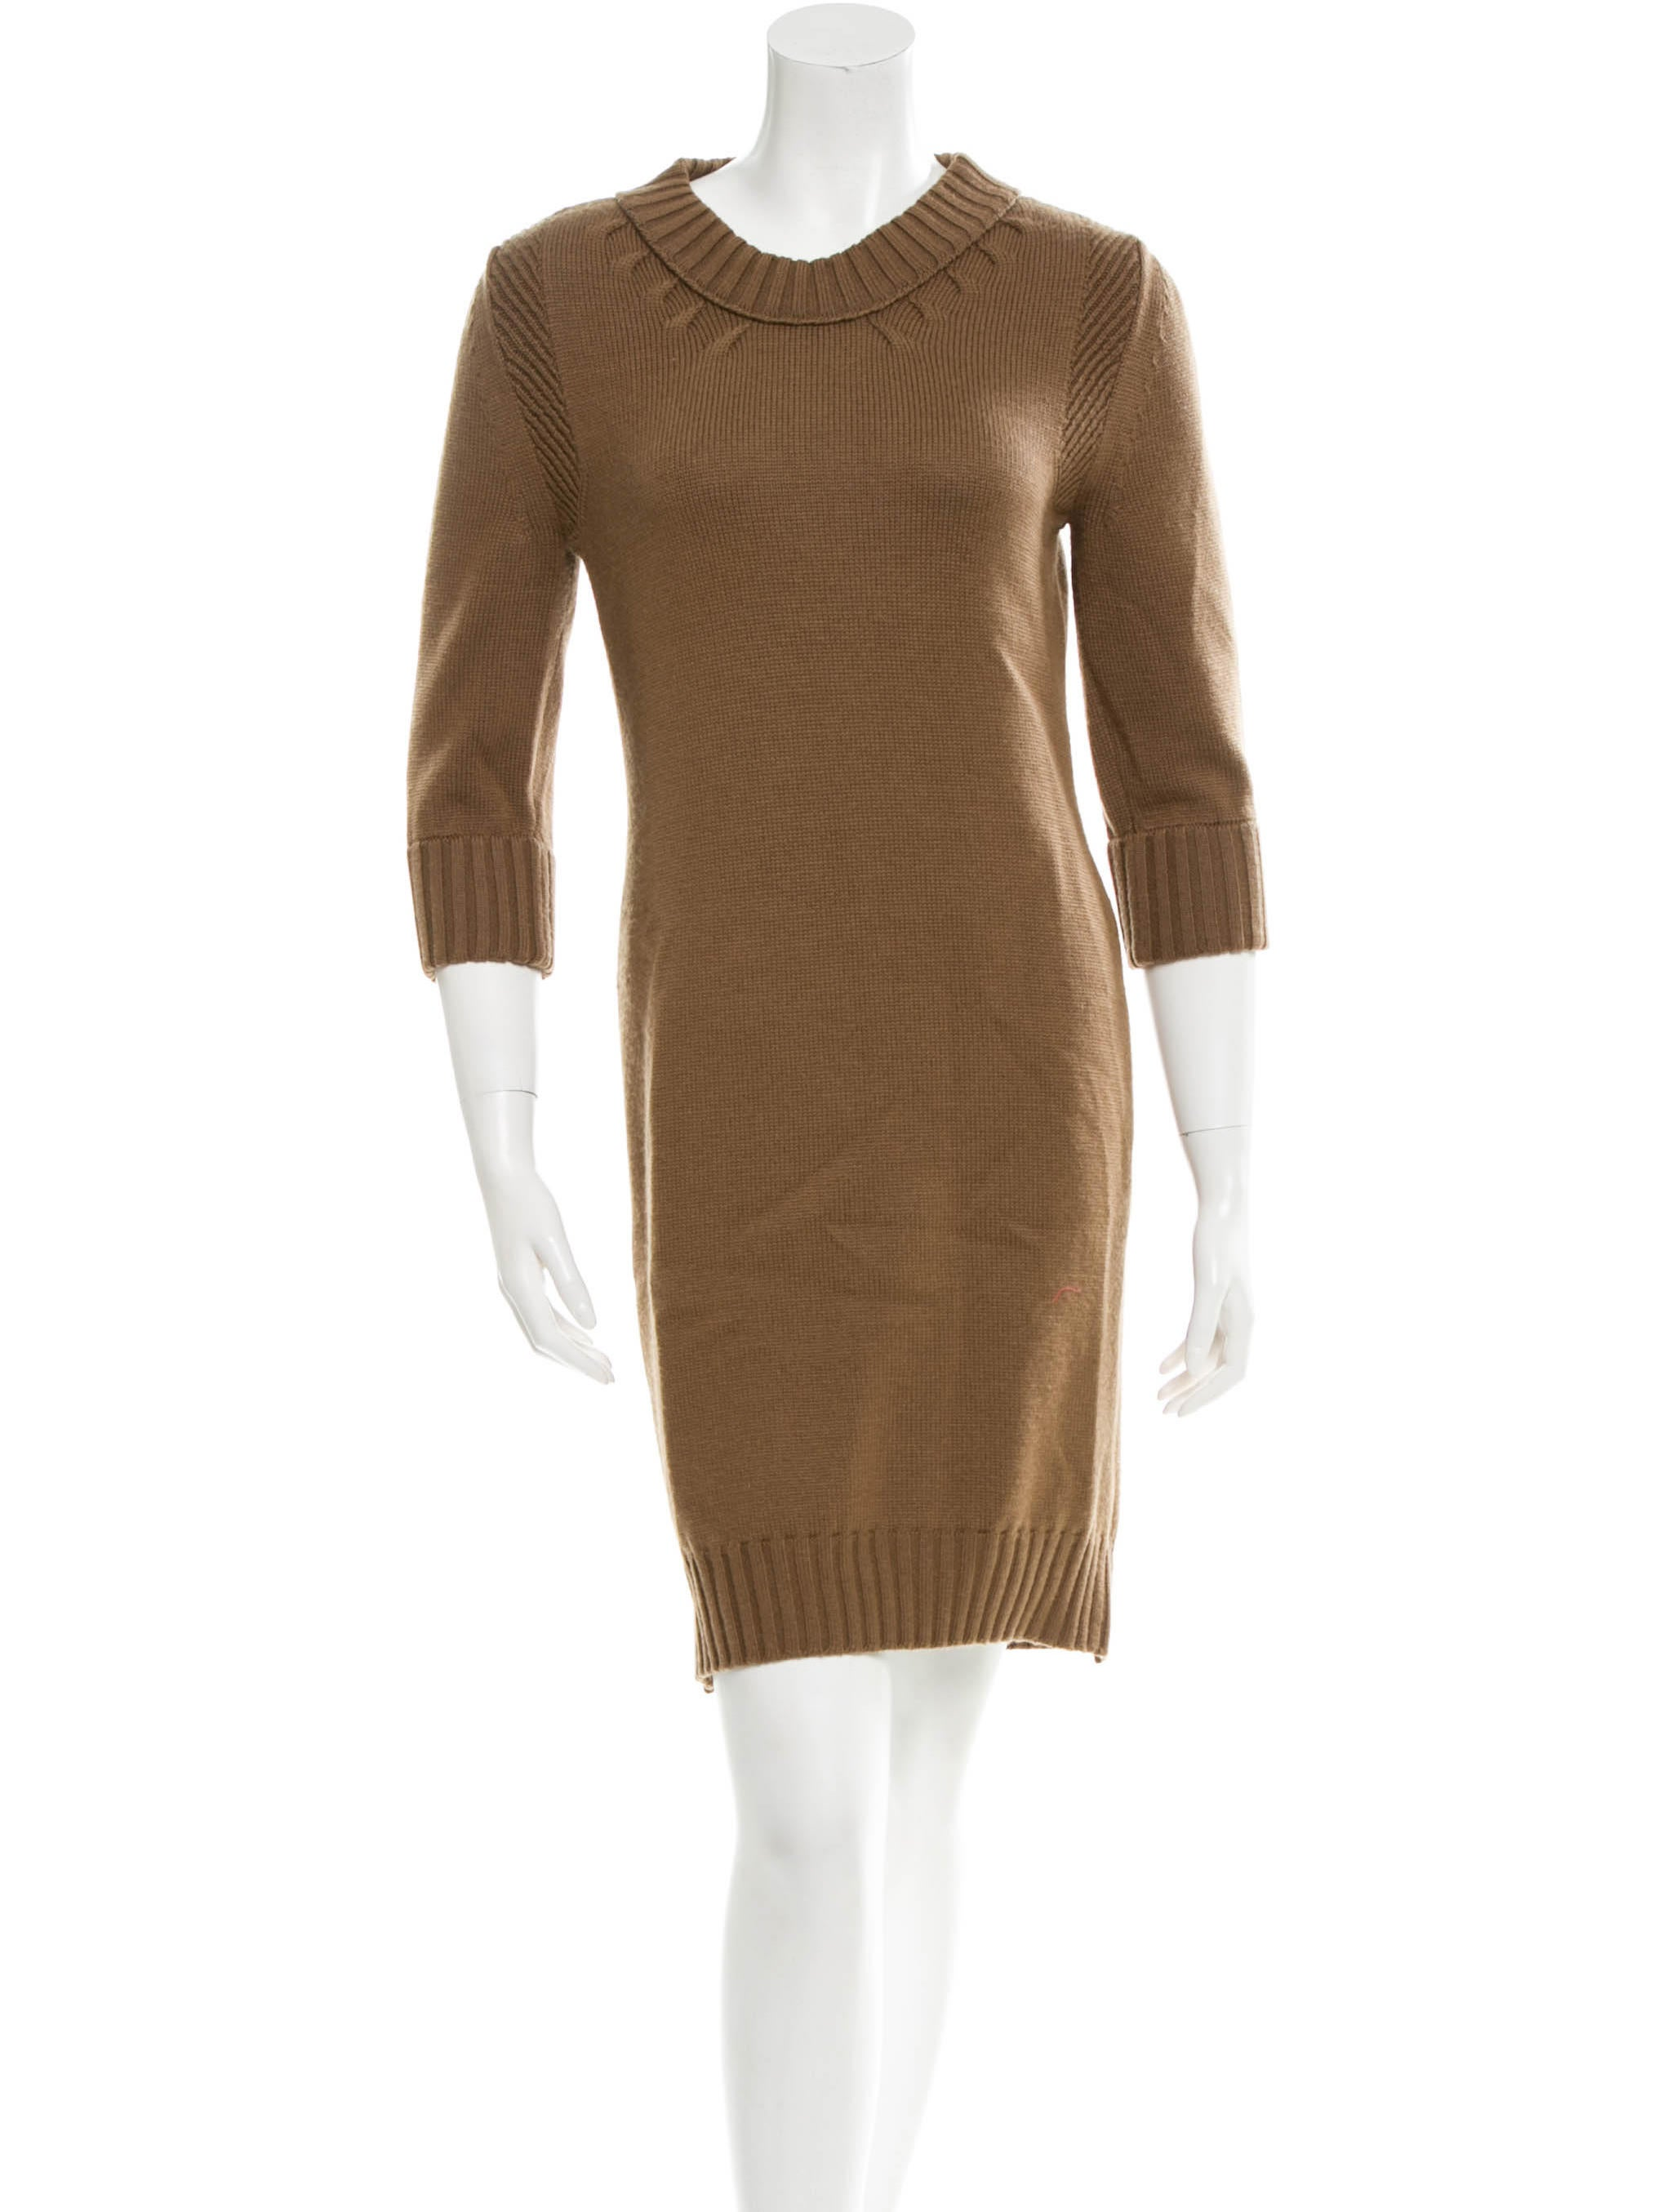 Chlou00e9 Wool Sweater Dress - Clothing - CHL35304 | The RealReal